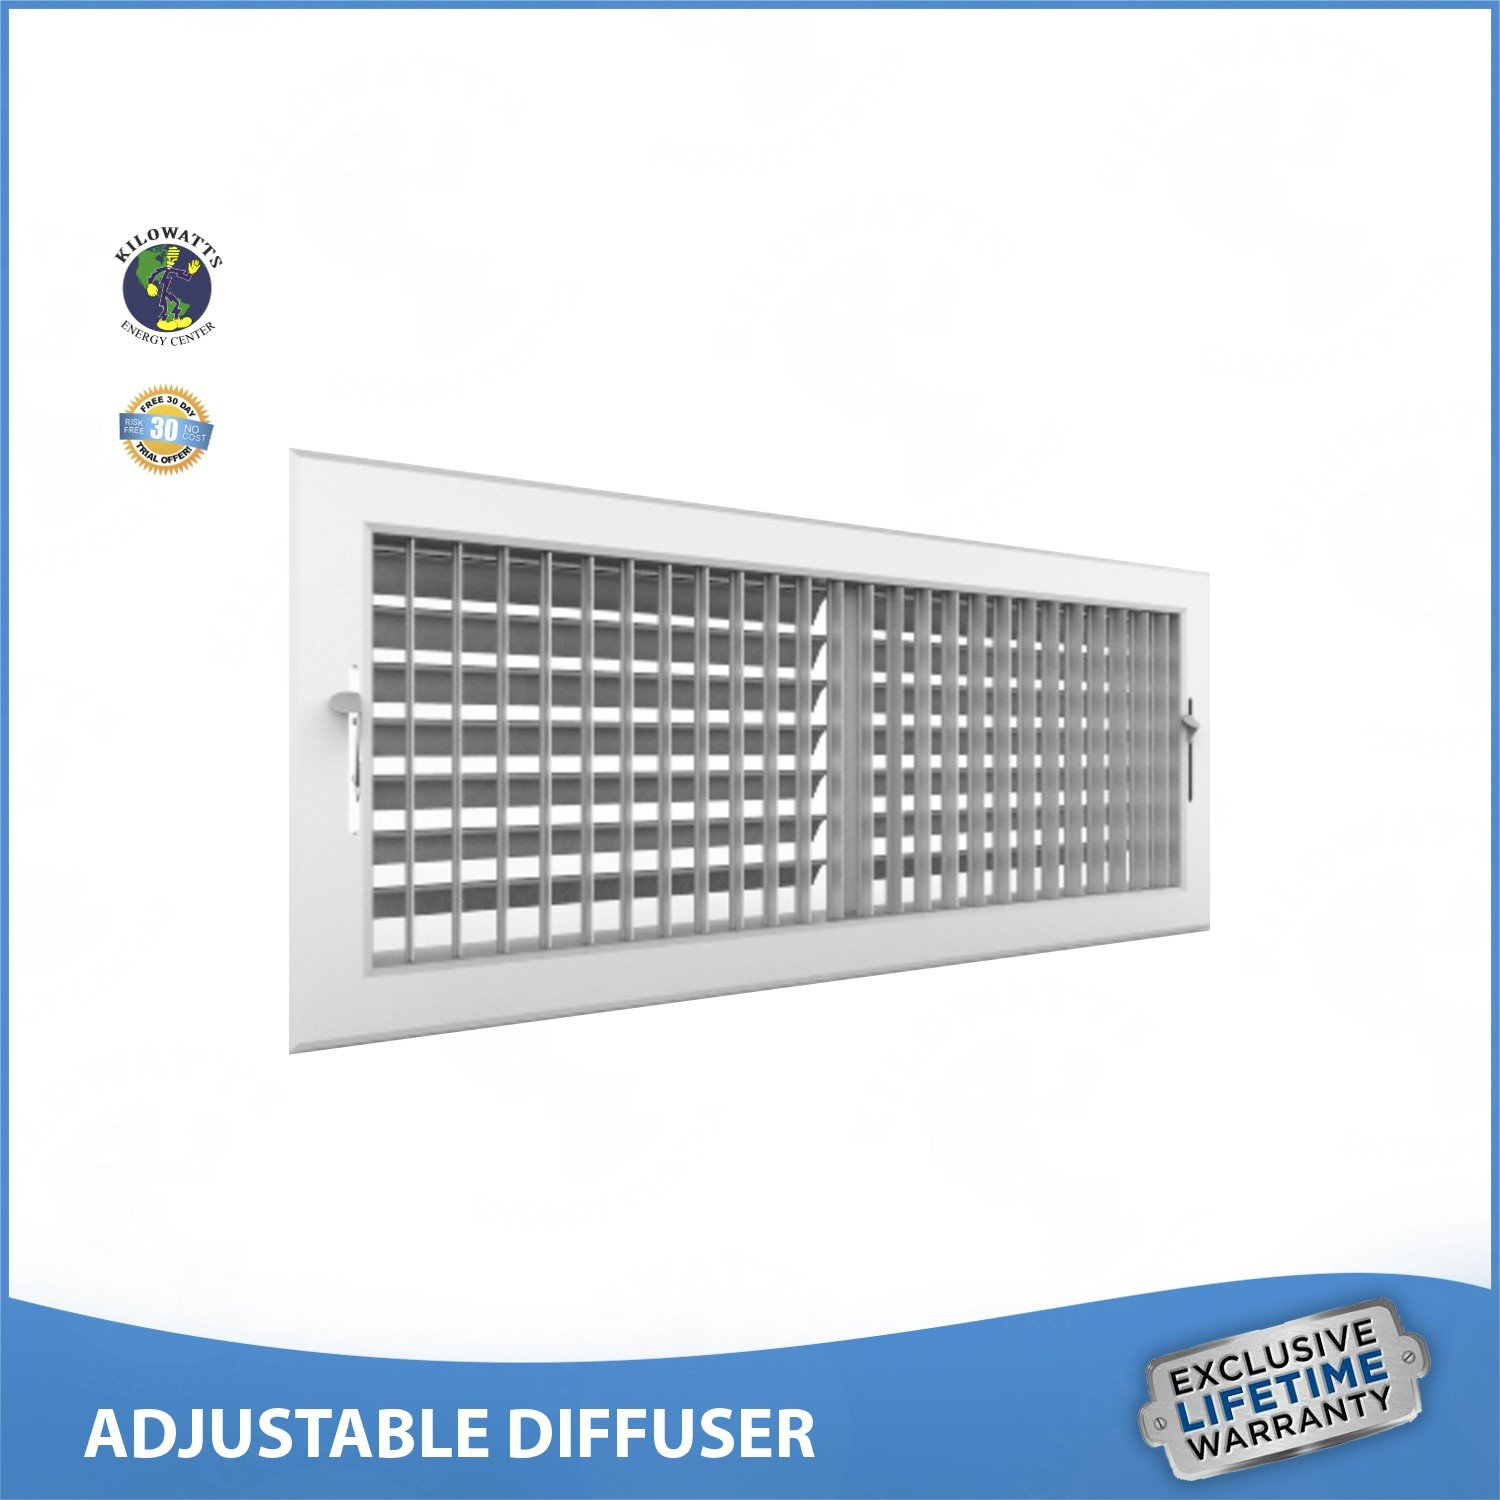 16''w x 6''h ADJUSTABLE DIFFUSER - Vent Duct Cover - Grille Register - Sidewall or Ceiling - High Airflow by Kilowatts Energy Center (Image #3)